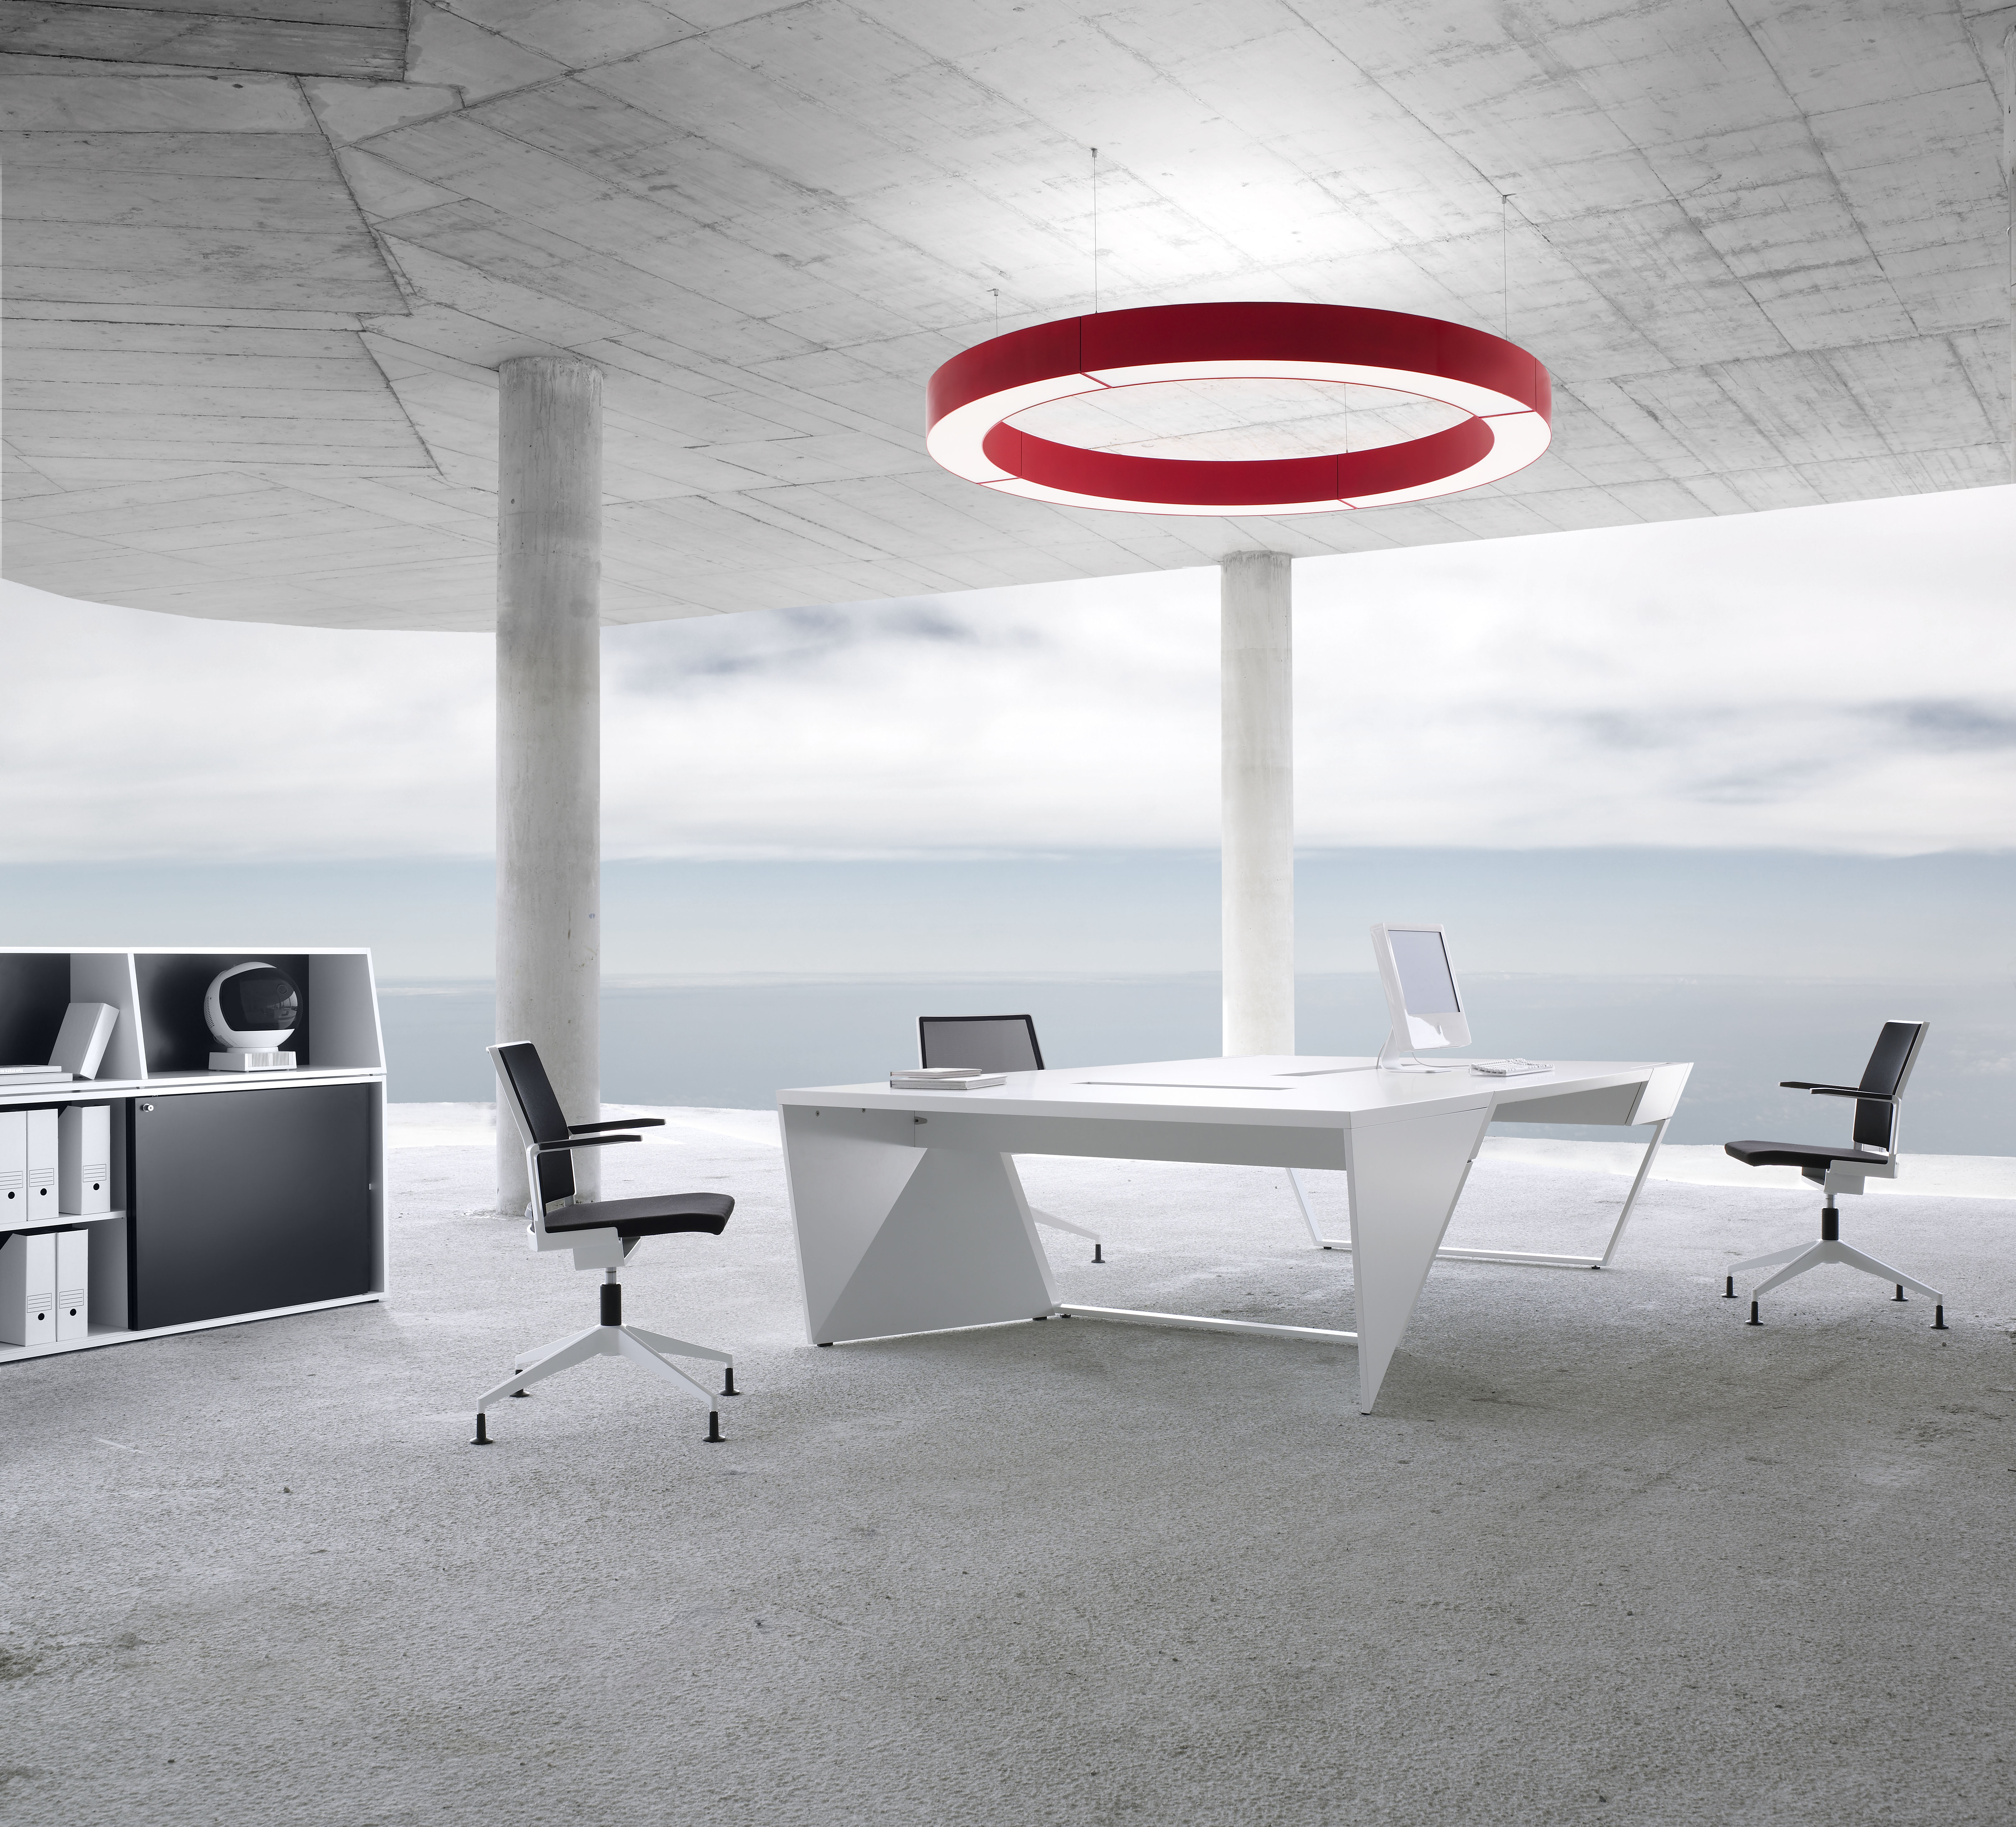 halo for office and object: idee.design.licht. presents ring